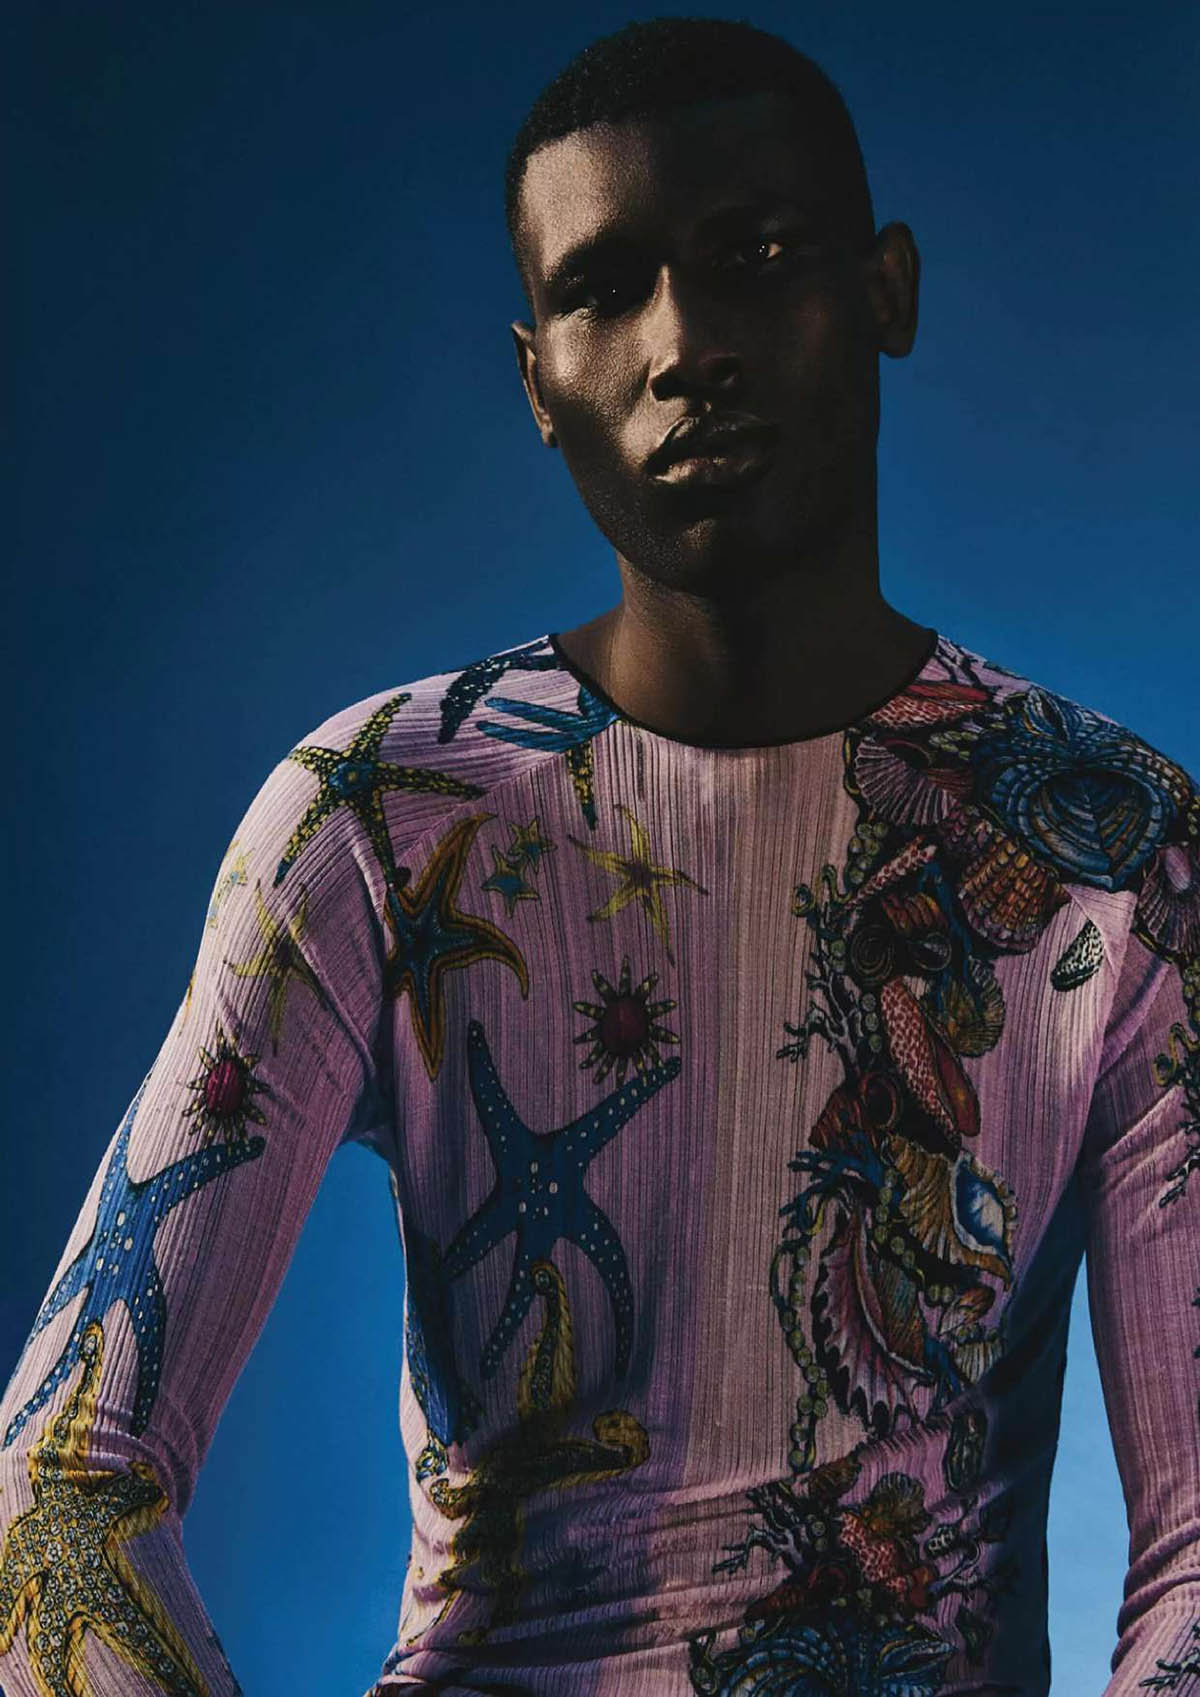 Kieran Warner and Maxwell Annoh by Eddie Blagbrough for Attitude Magazine February 2021